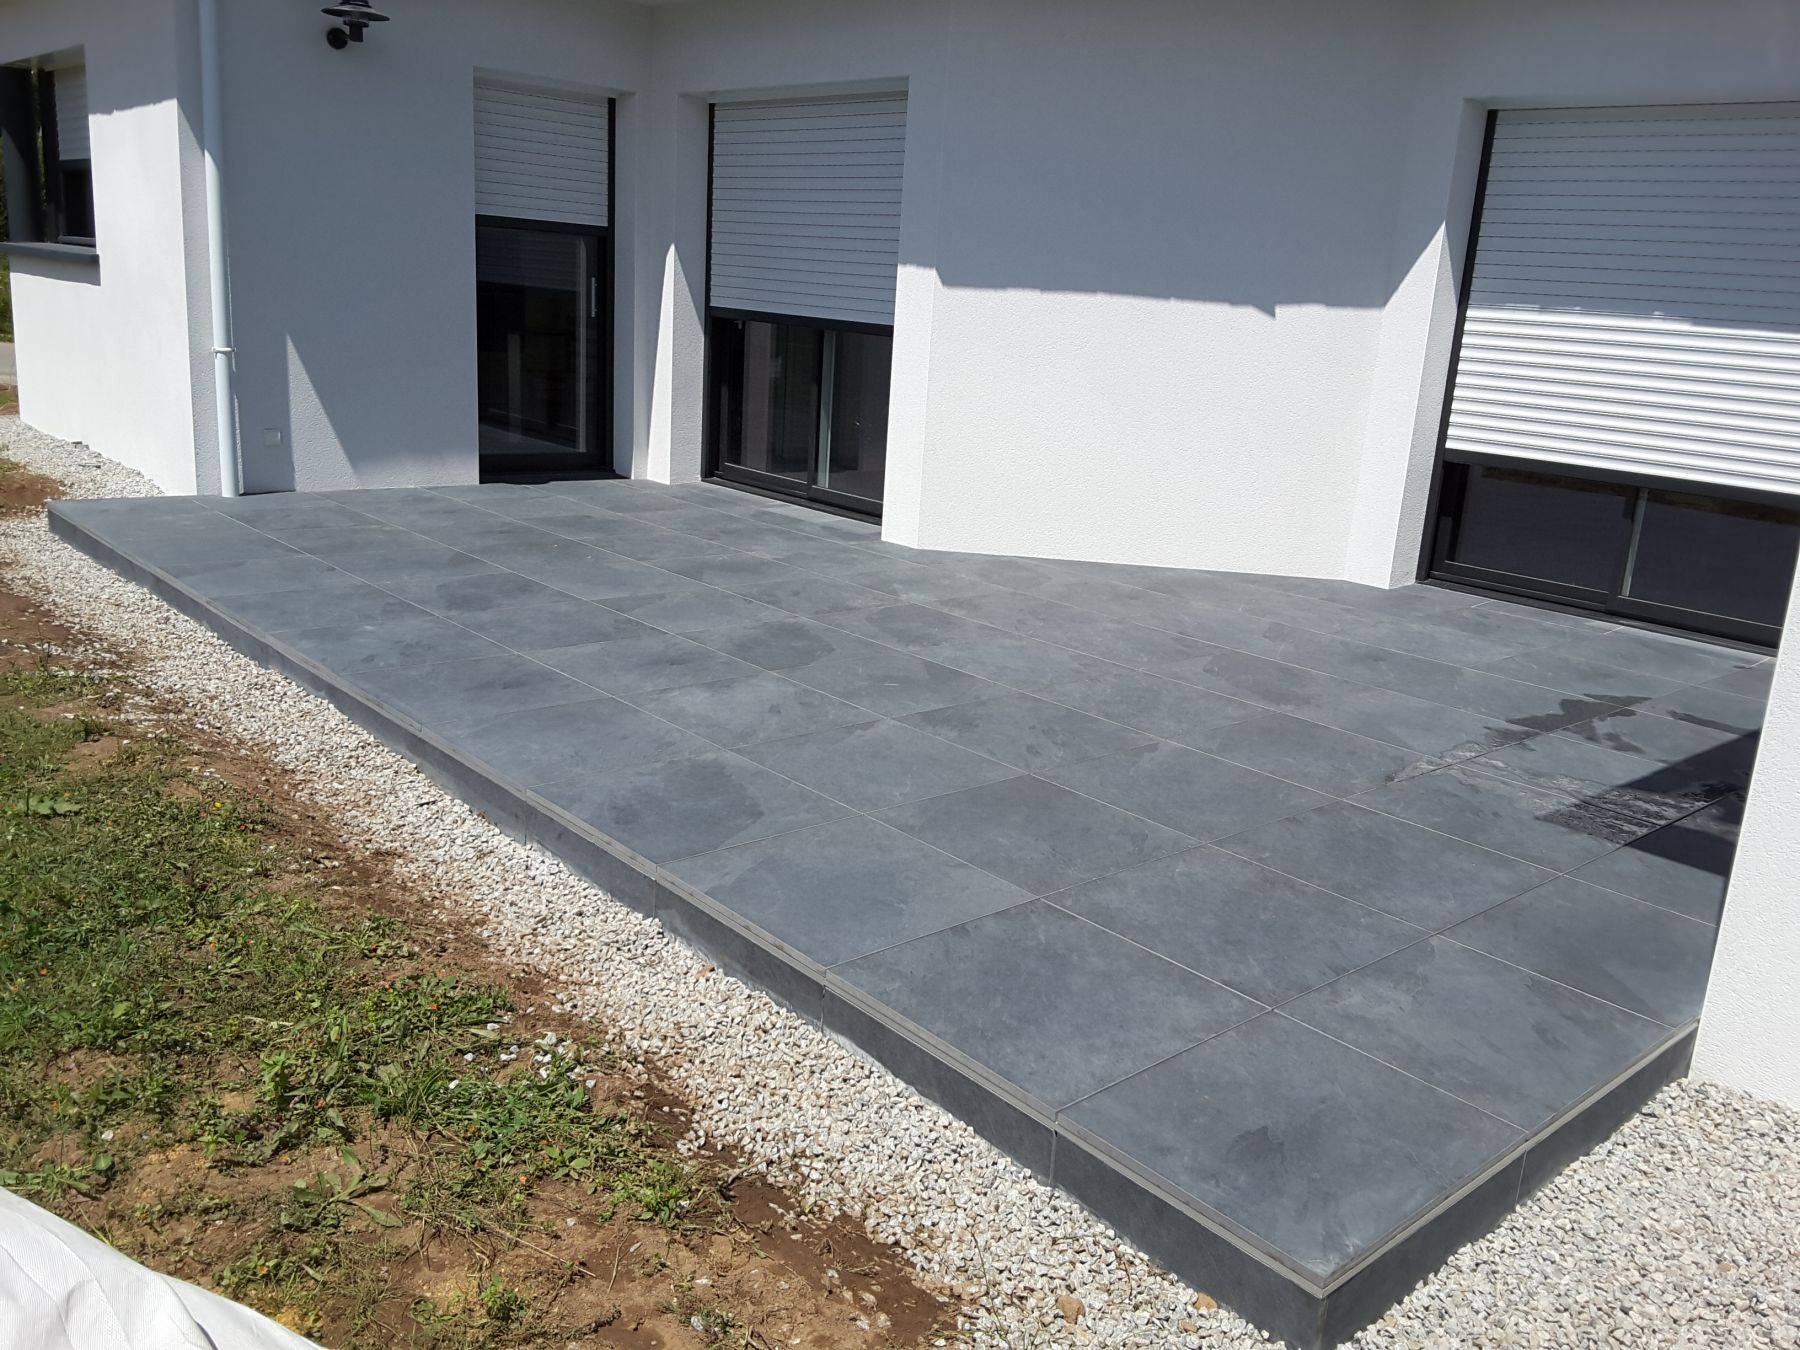 Carrelage design carrelage sur plot moderne design for Poser carrelage terrasse dalle beton